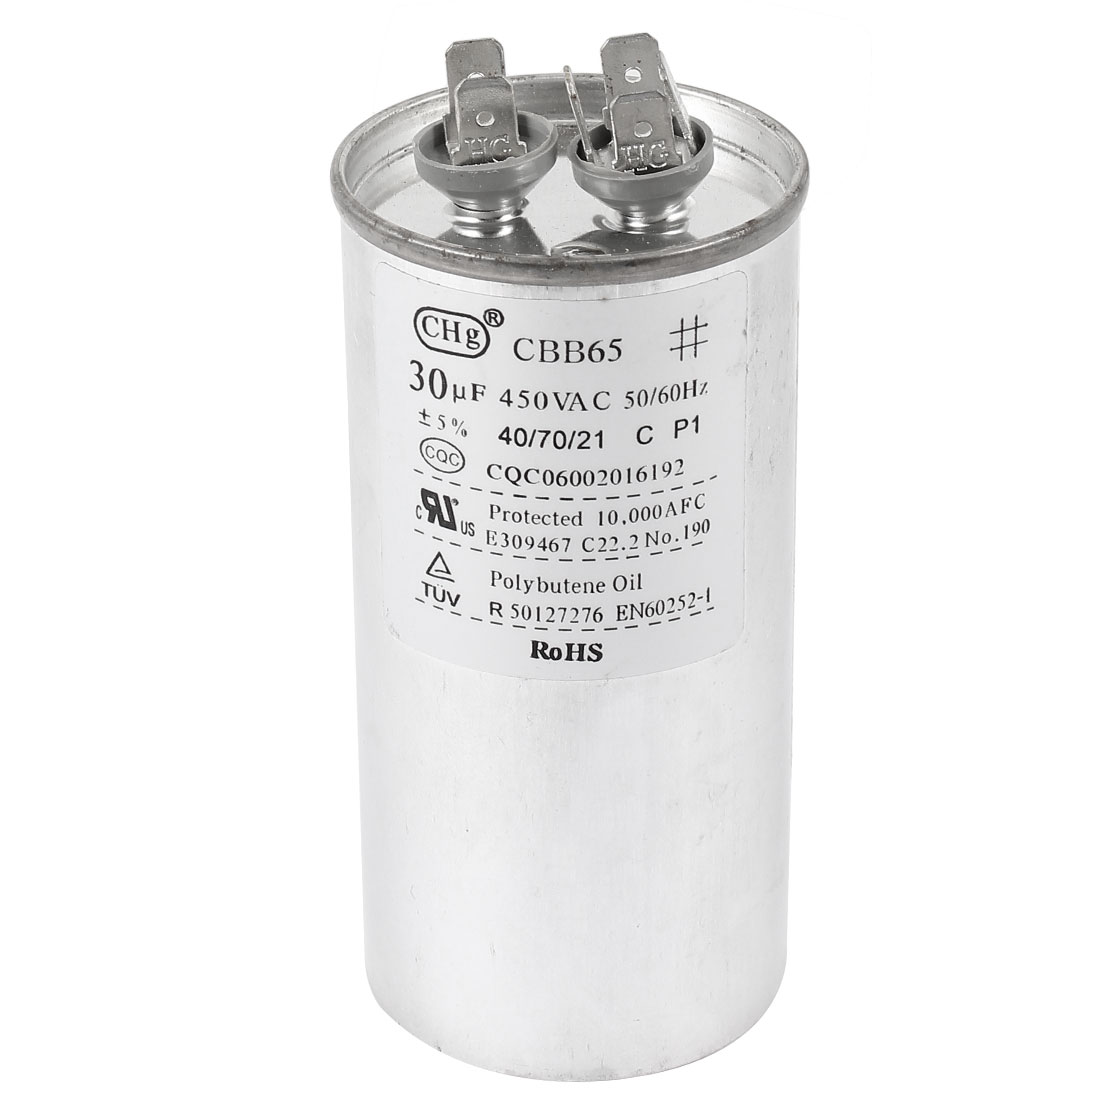 AC 450V CBB65 30uF 50/60Hz 6 Terminals Cylinder Shaped Air Conditioner Motor Run Capacitor Silver Tone